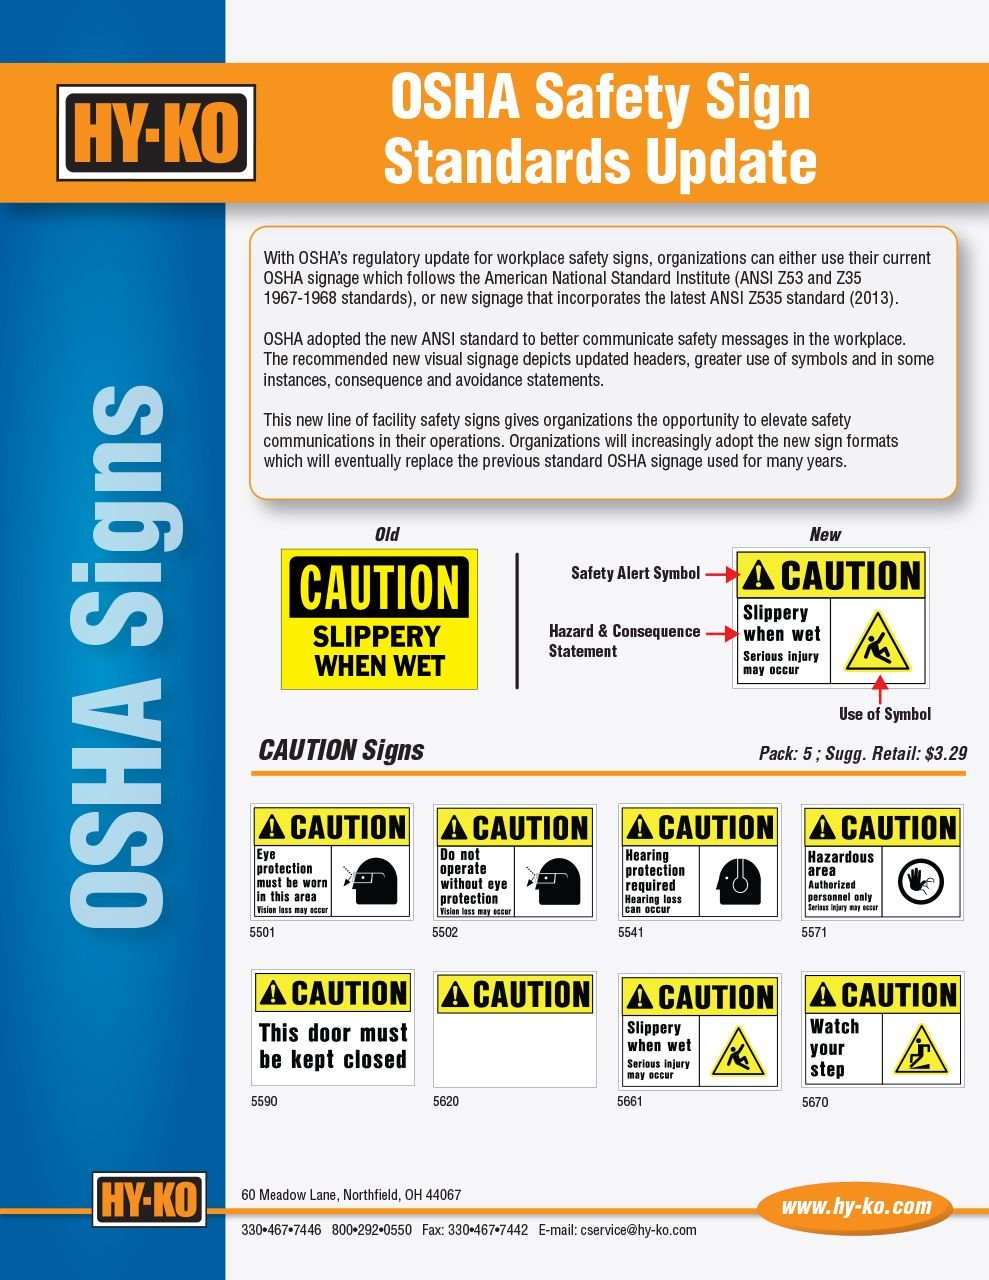 OSHA Safety Sign Standards Update